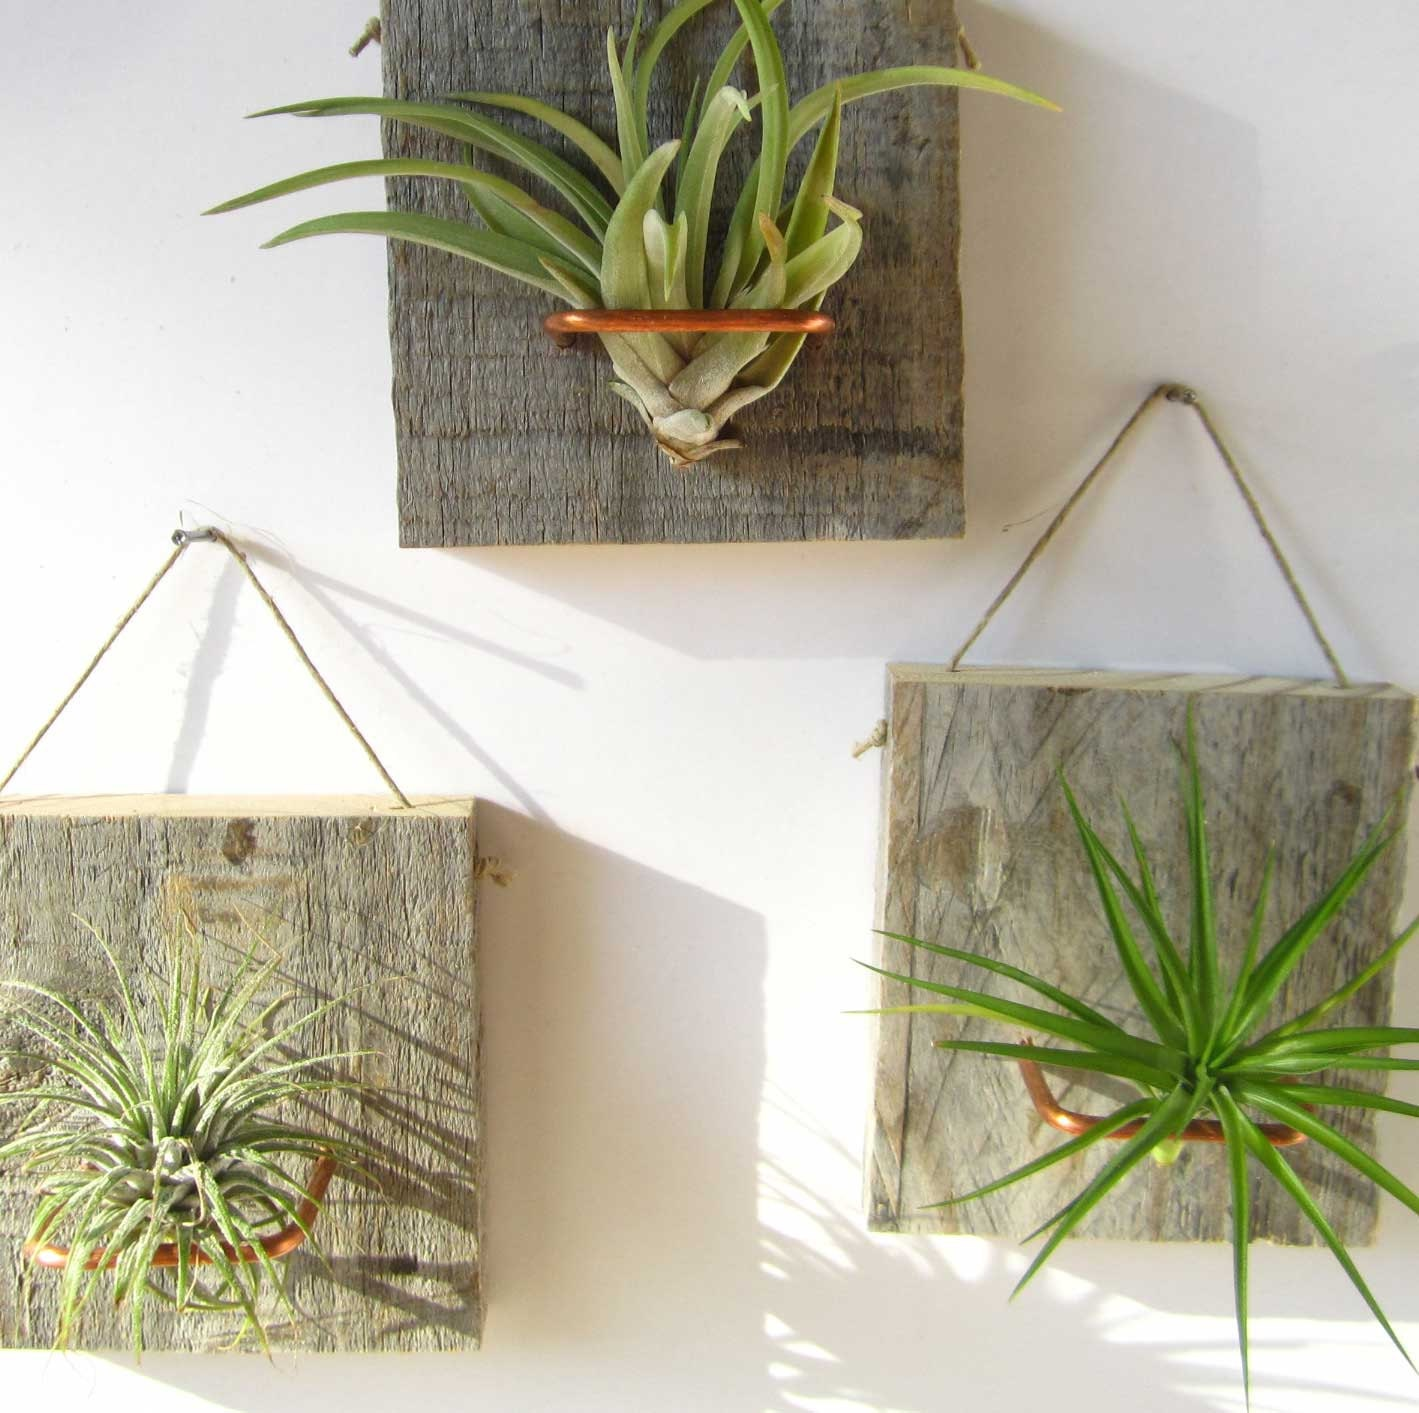 Unique air plant related items Etsy